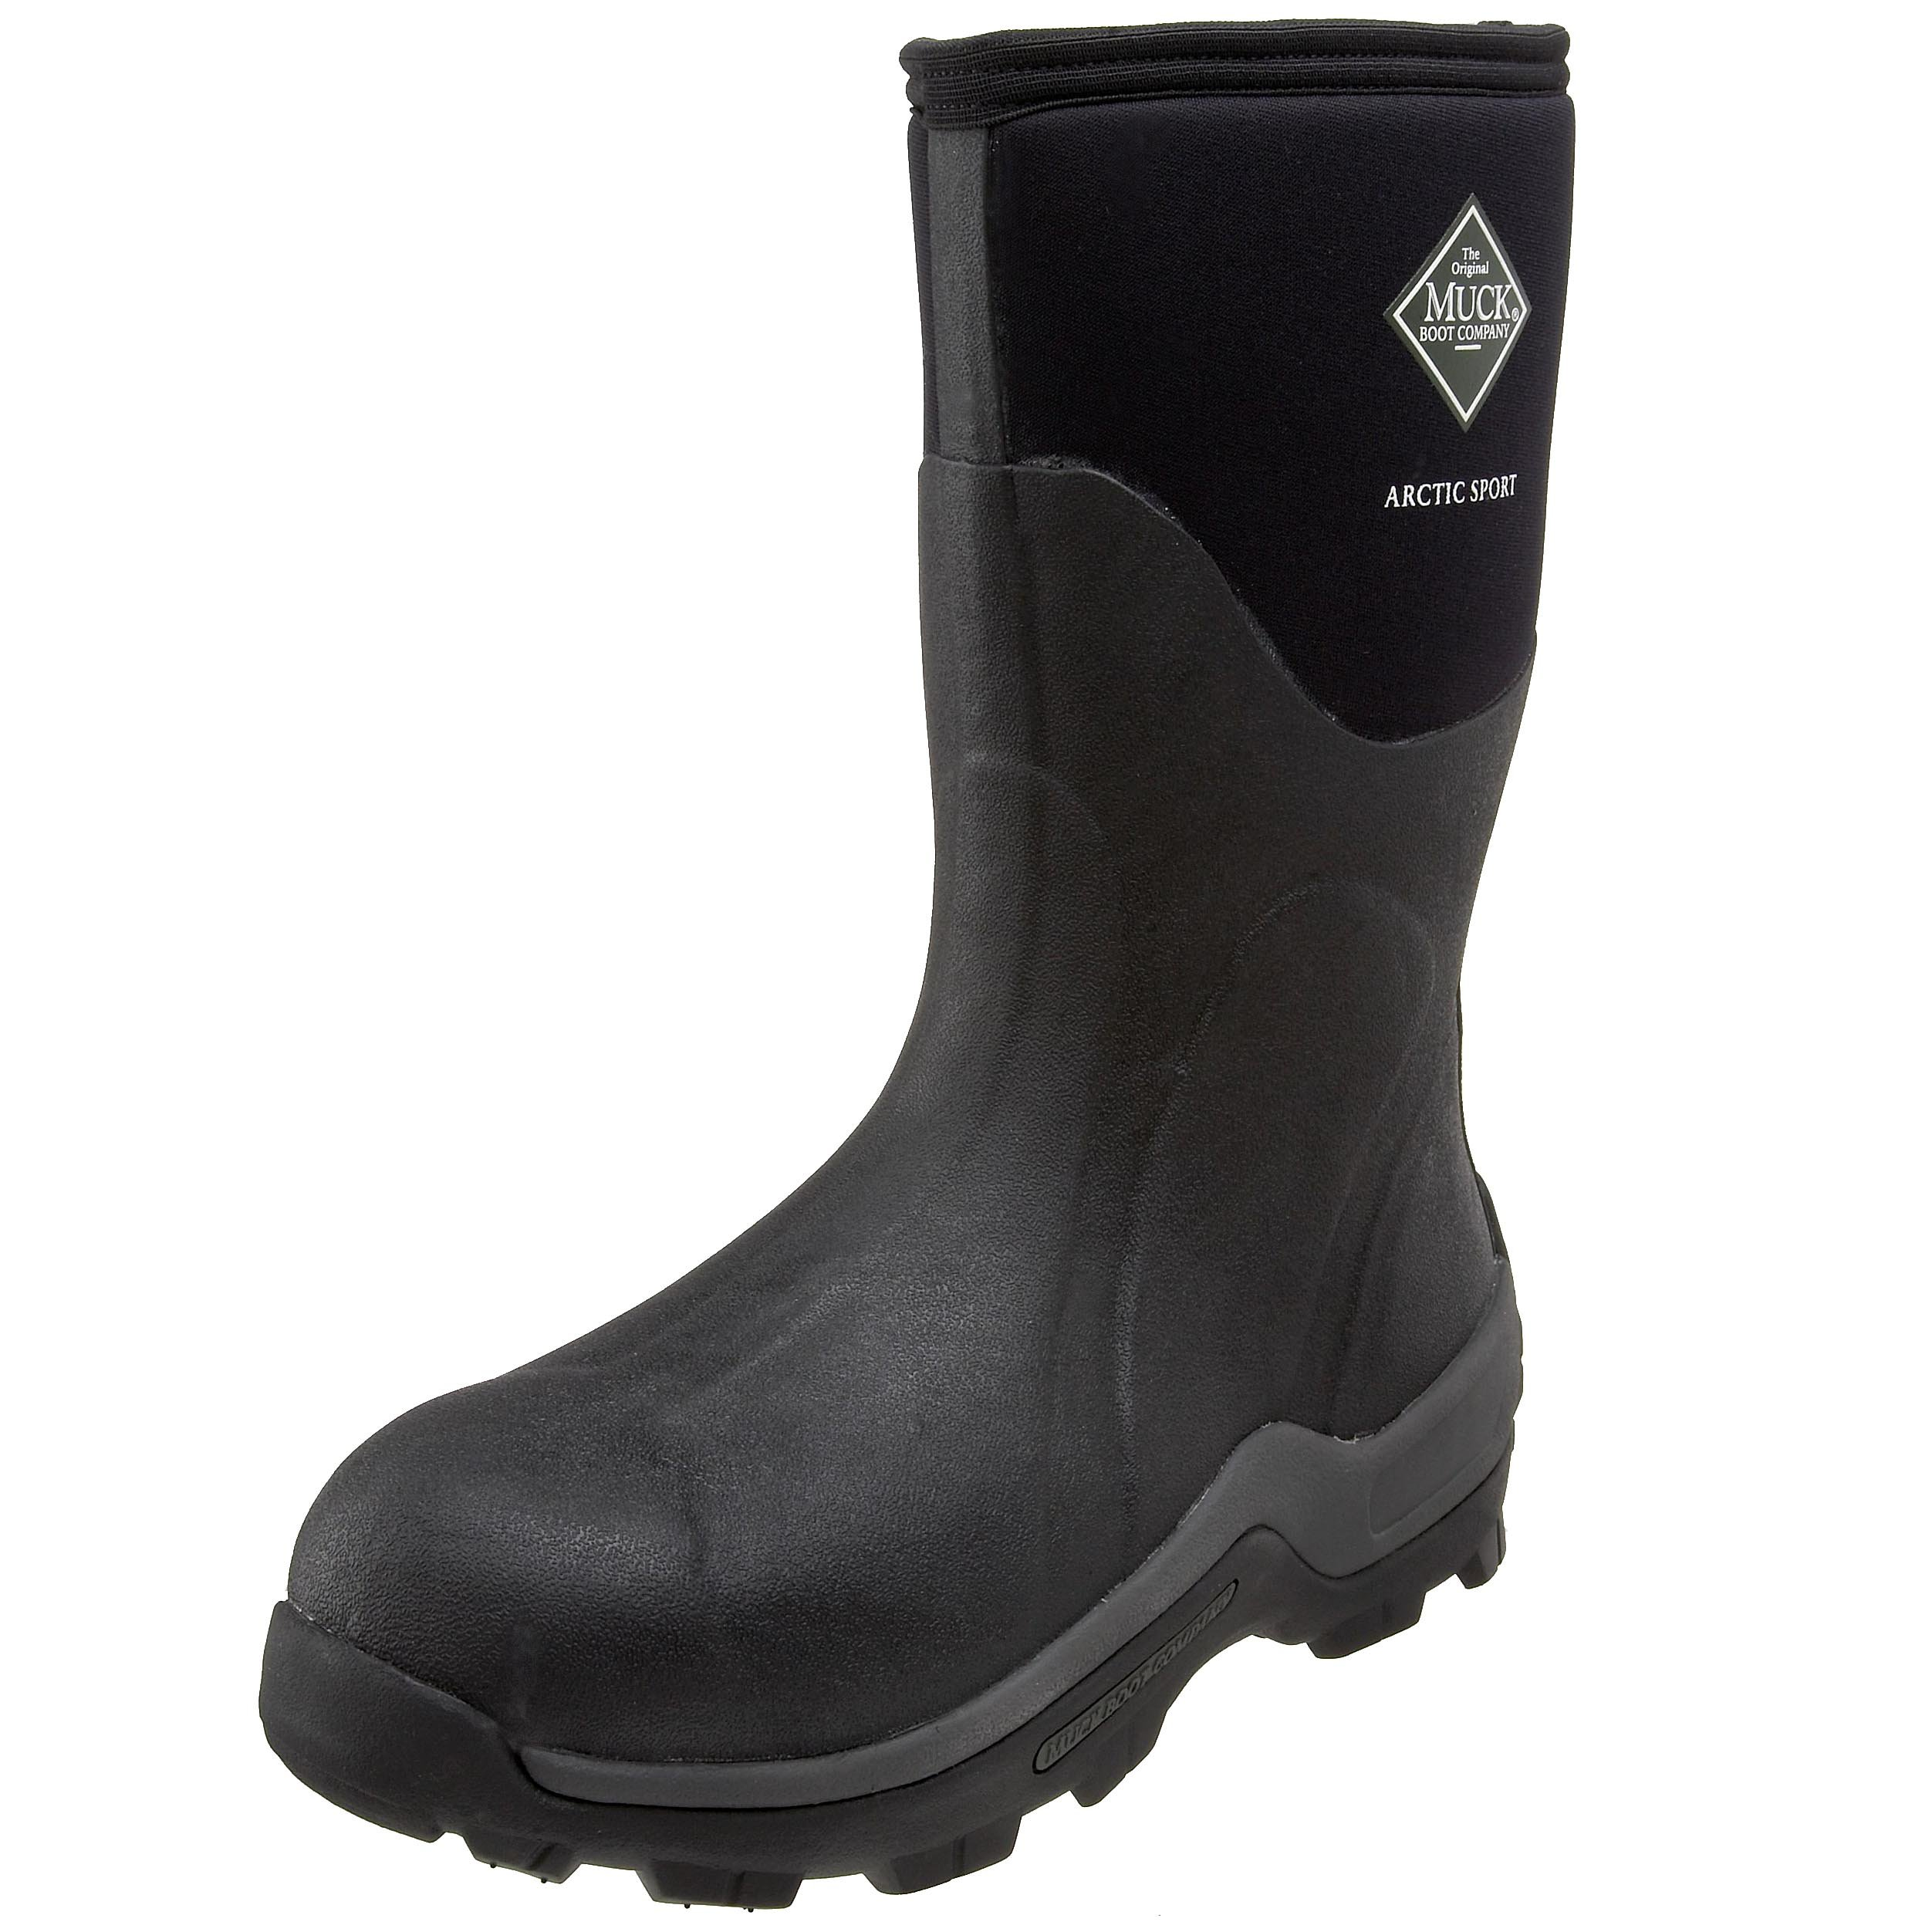 The Original MuckBoots Arctic Sport Mid Outdoor Boot,Black,12 M US Mens/13 M US Womens